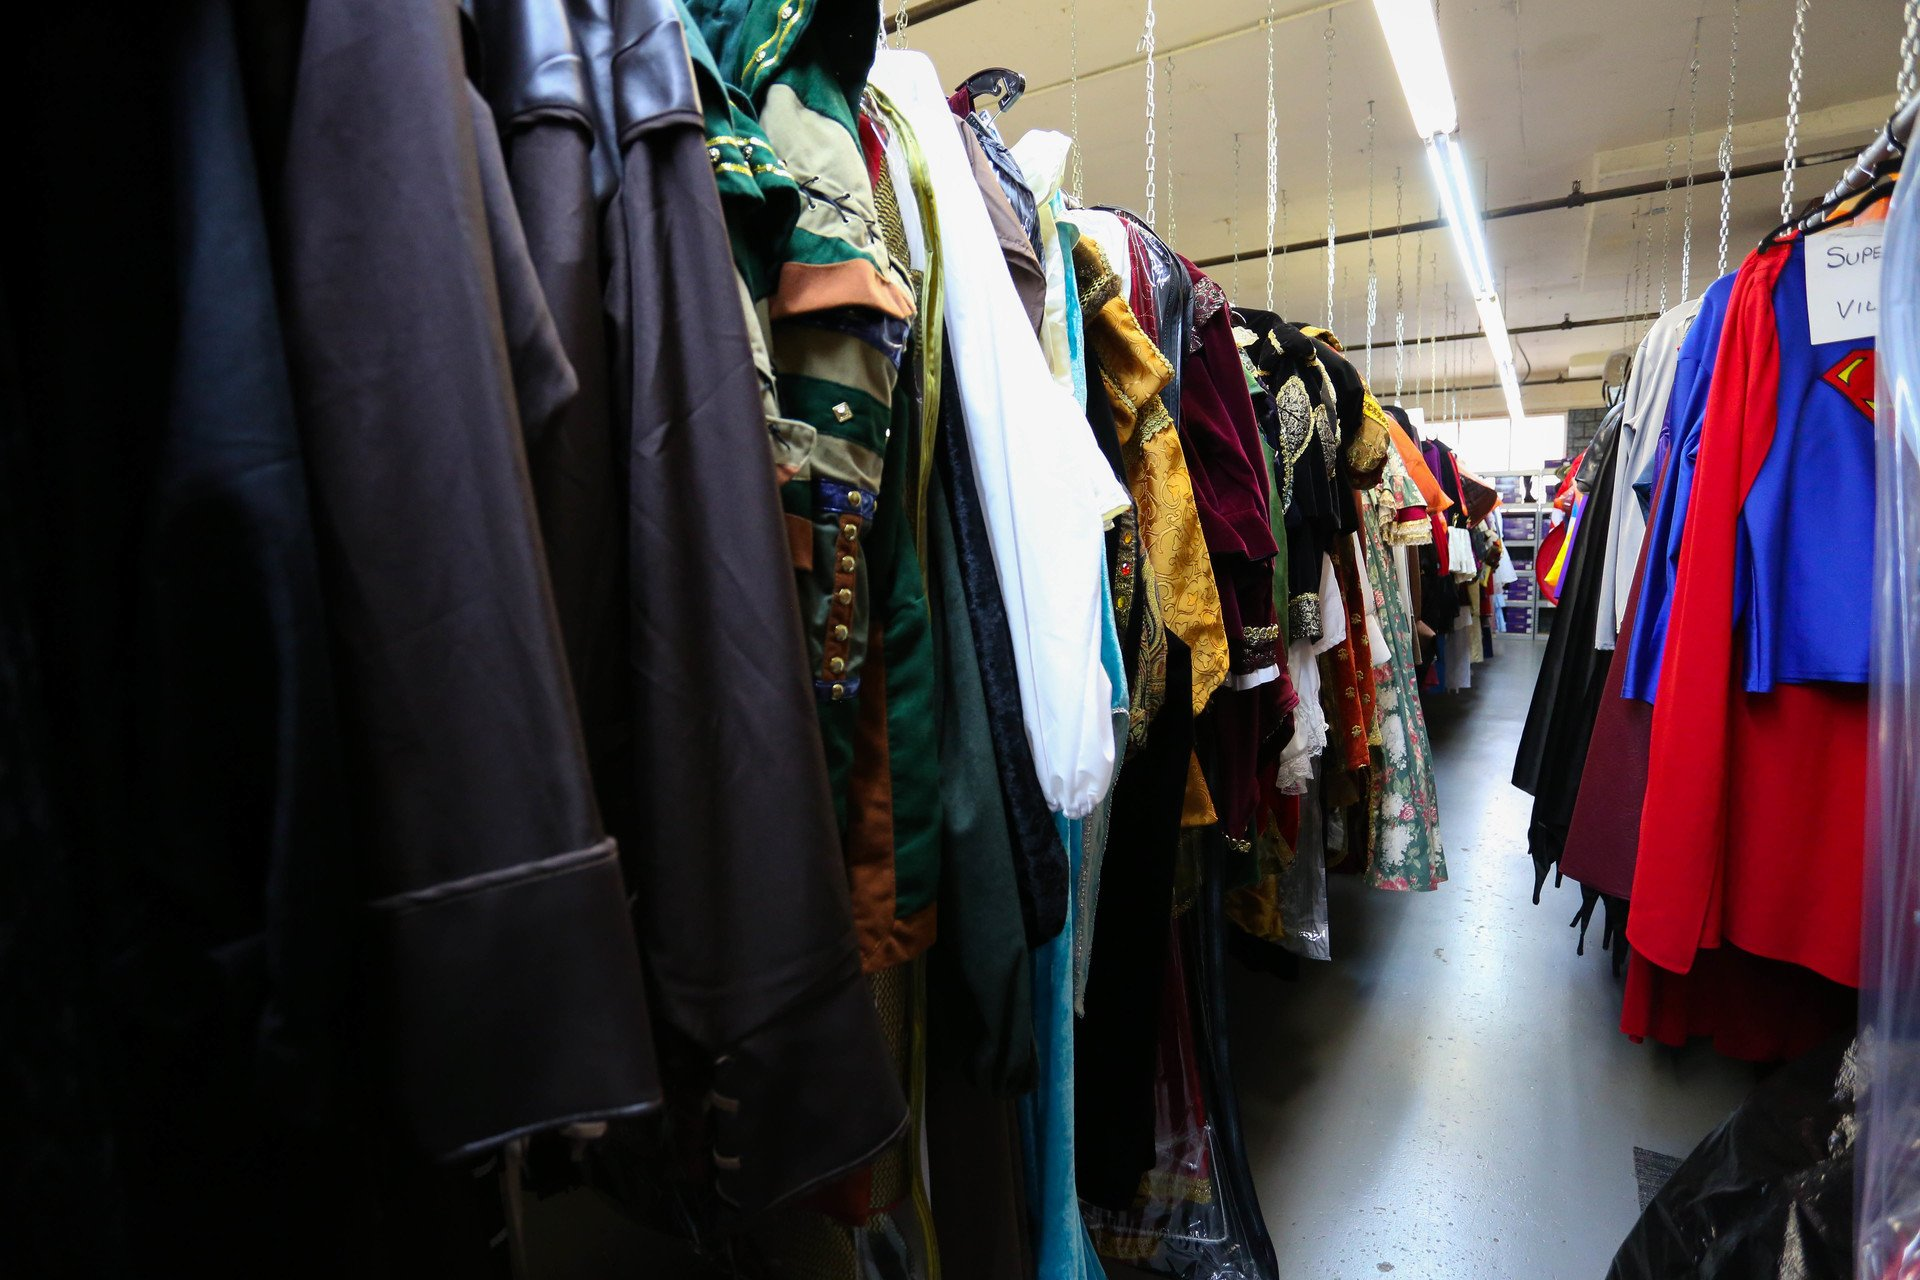 rental costumes, costume rentals for adult